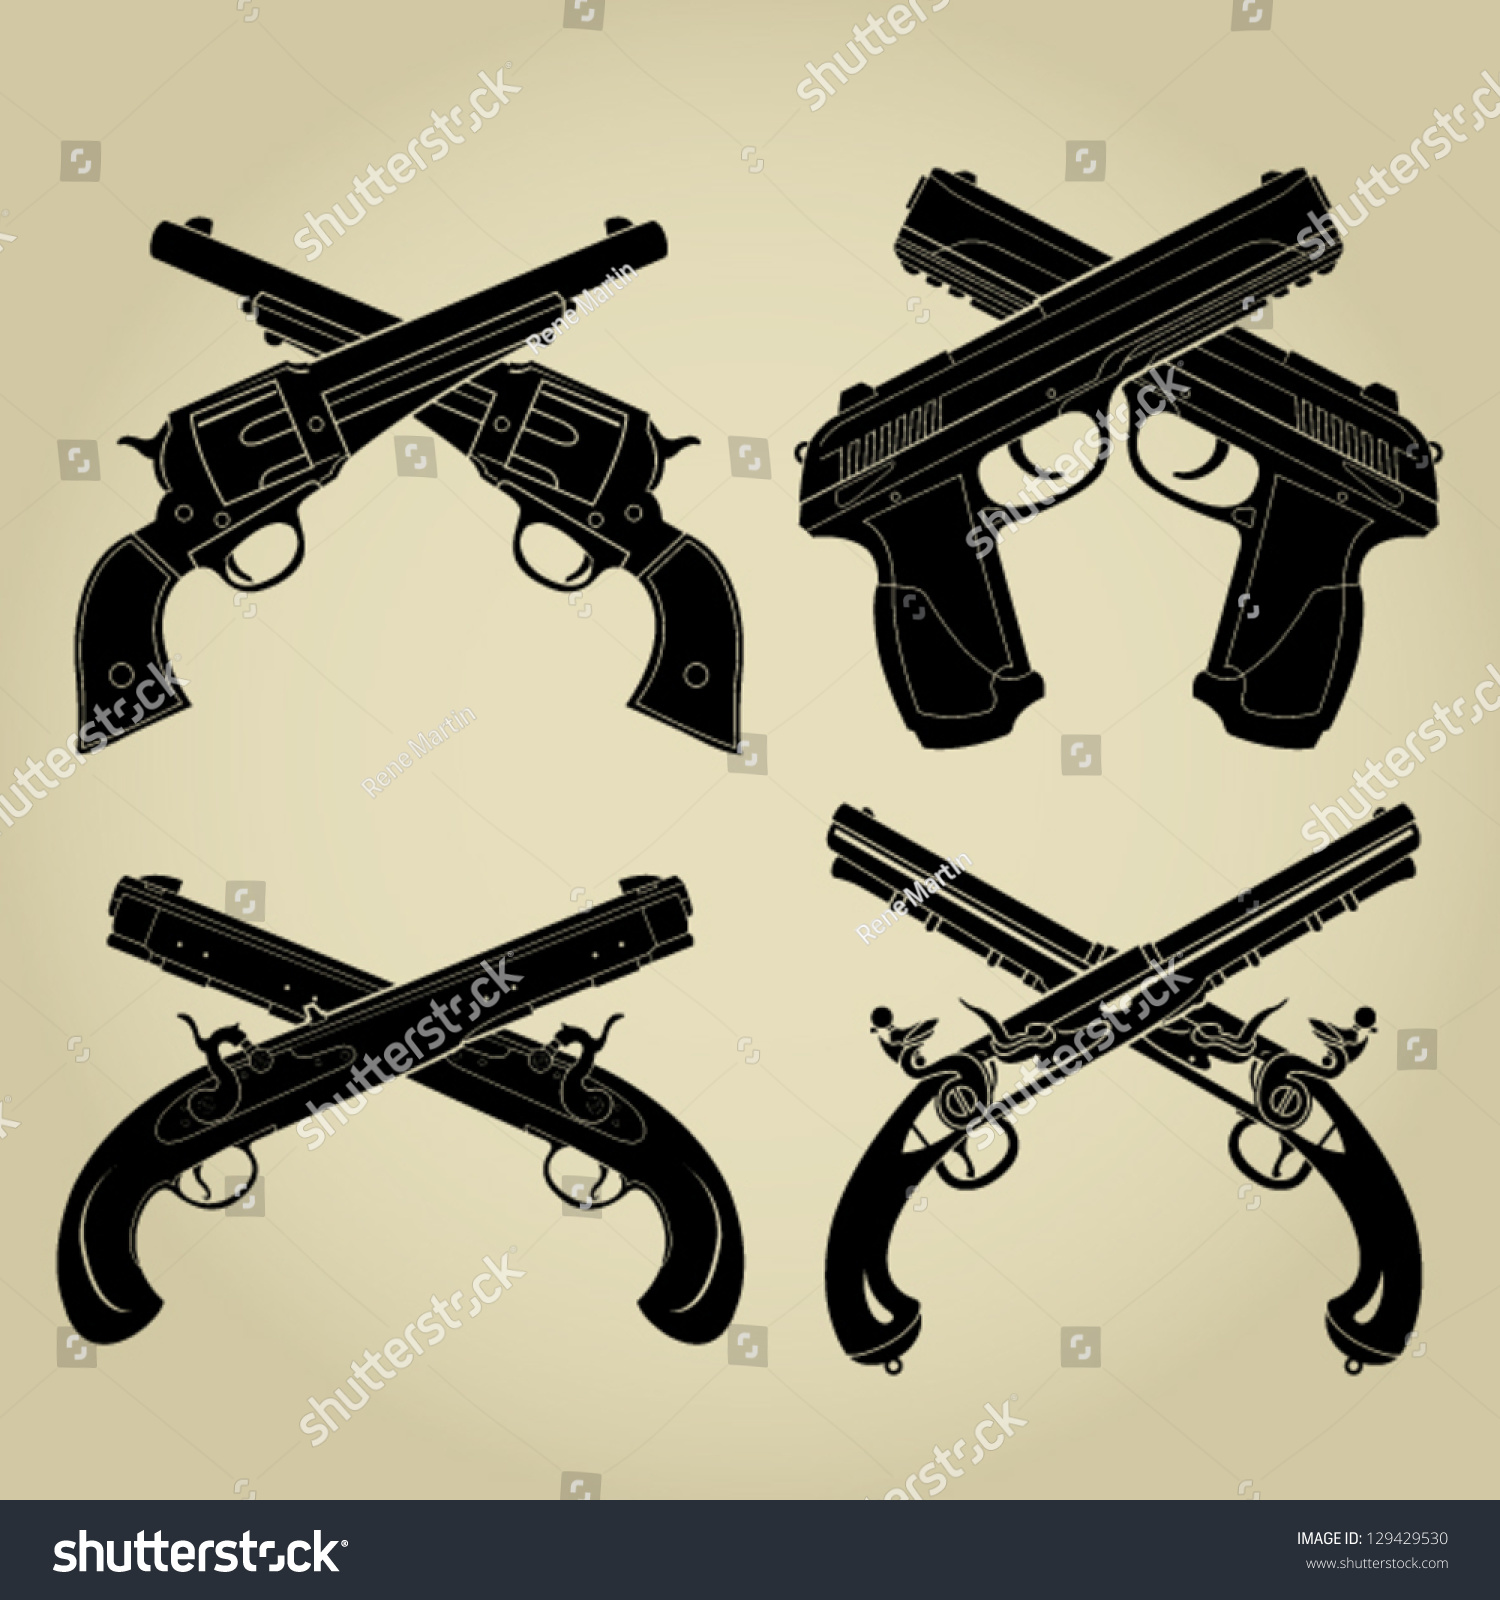 Crossed Pistols Evolution Silhouettes - 478.2KB